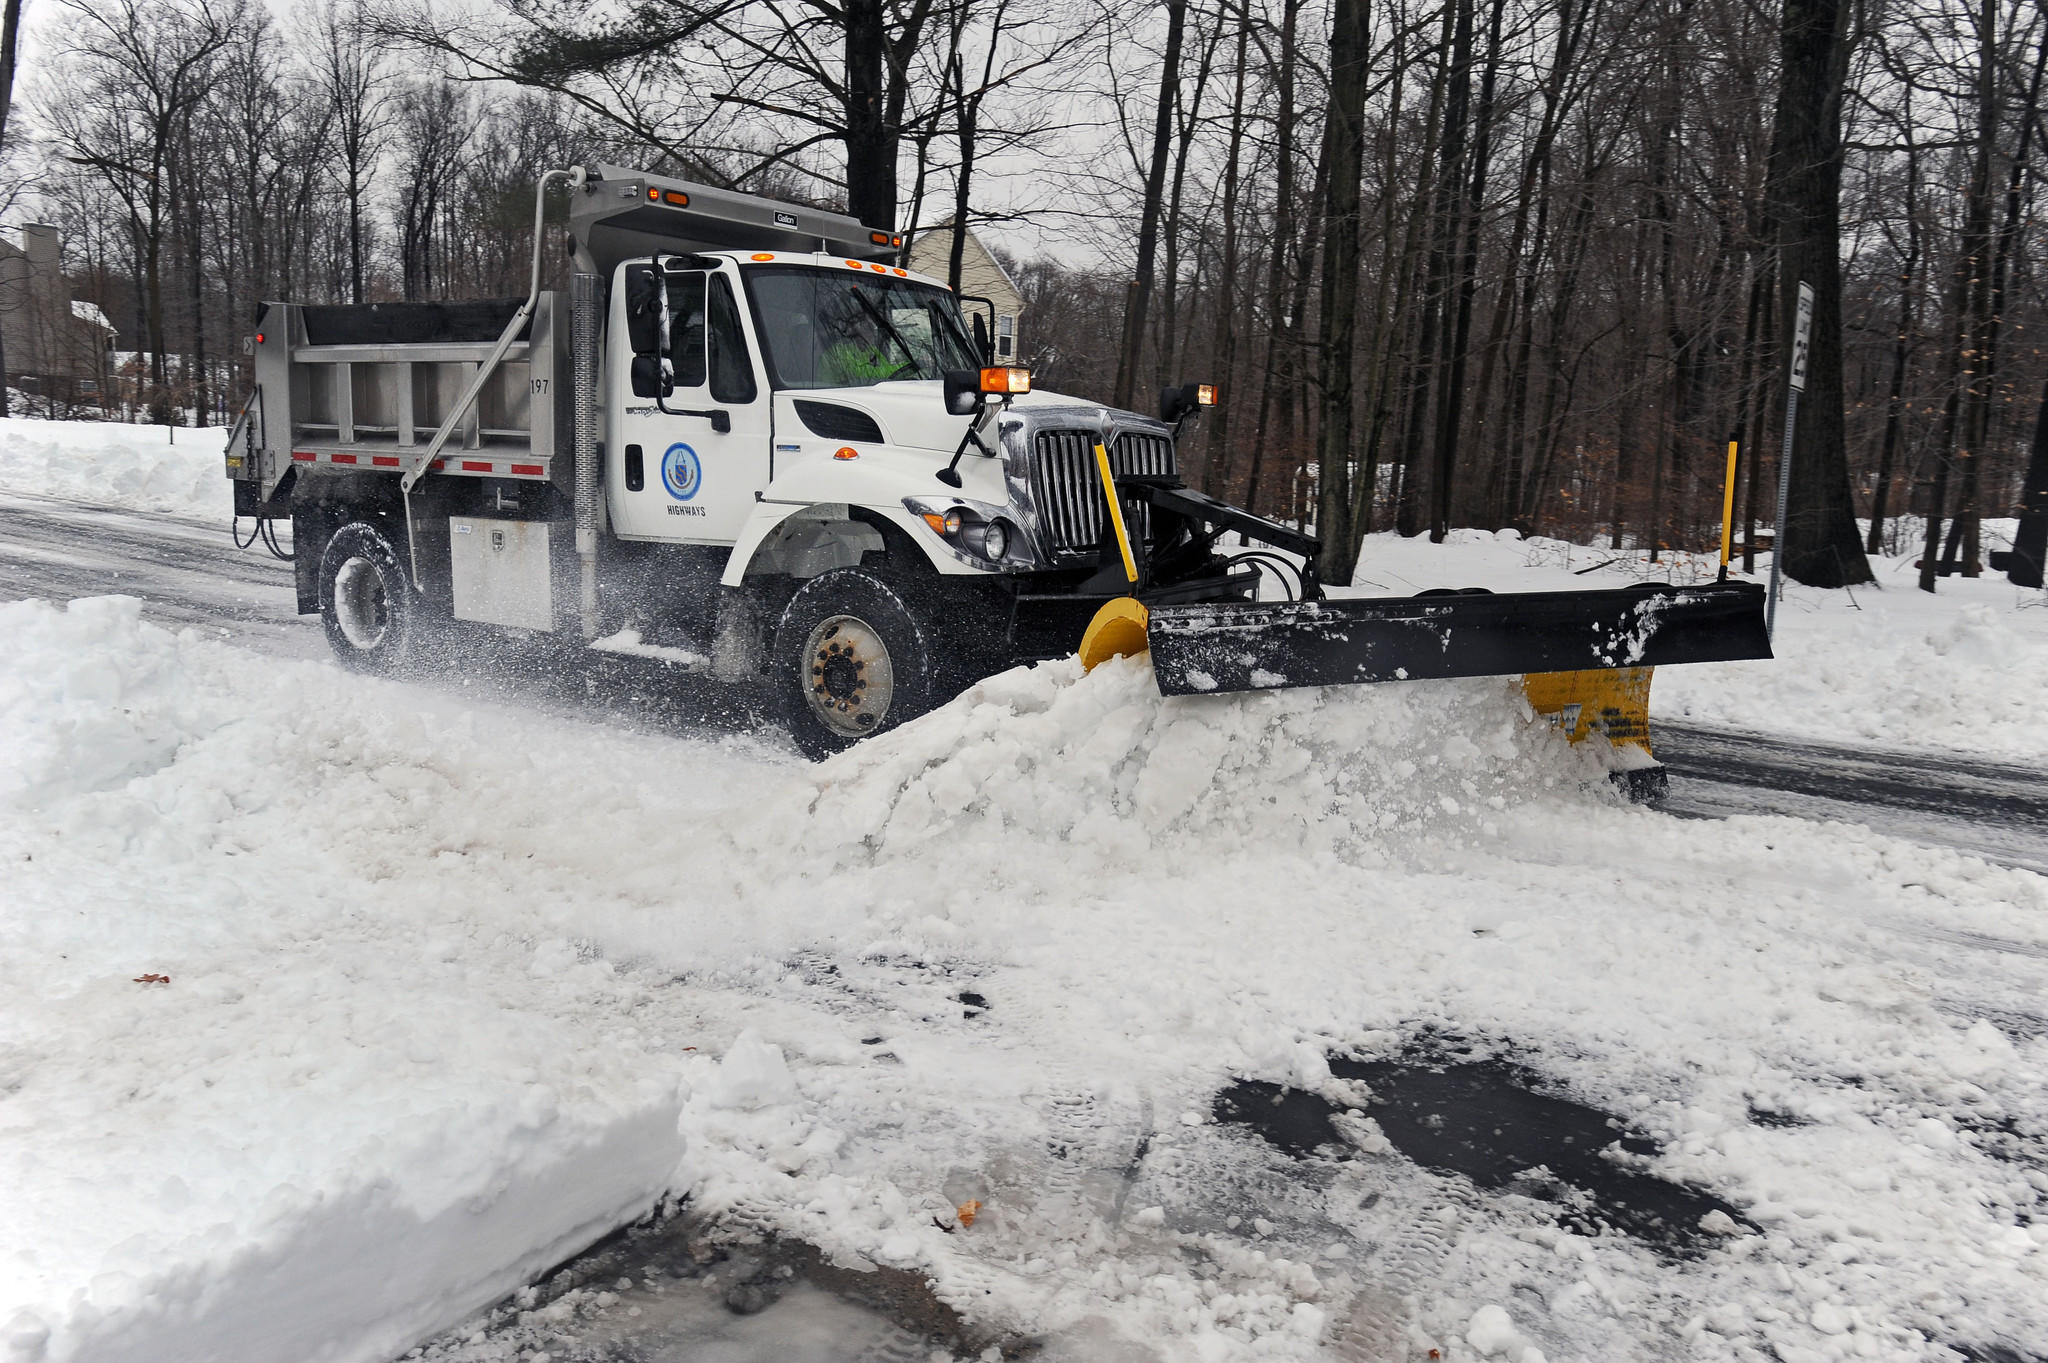 Harford County snow plow clears secondary roads in the Fallston area during Thursday's storm.